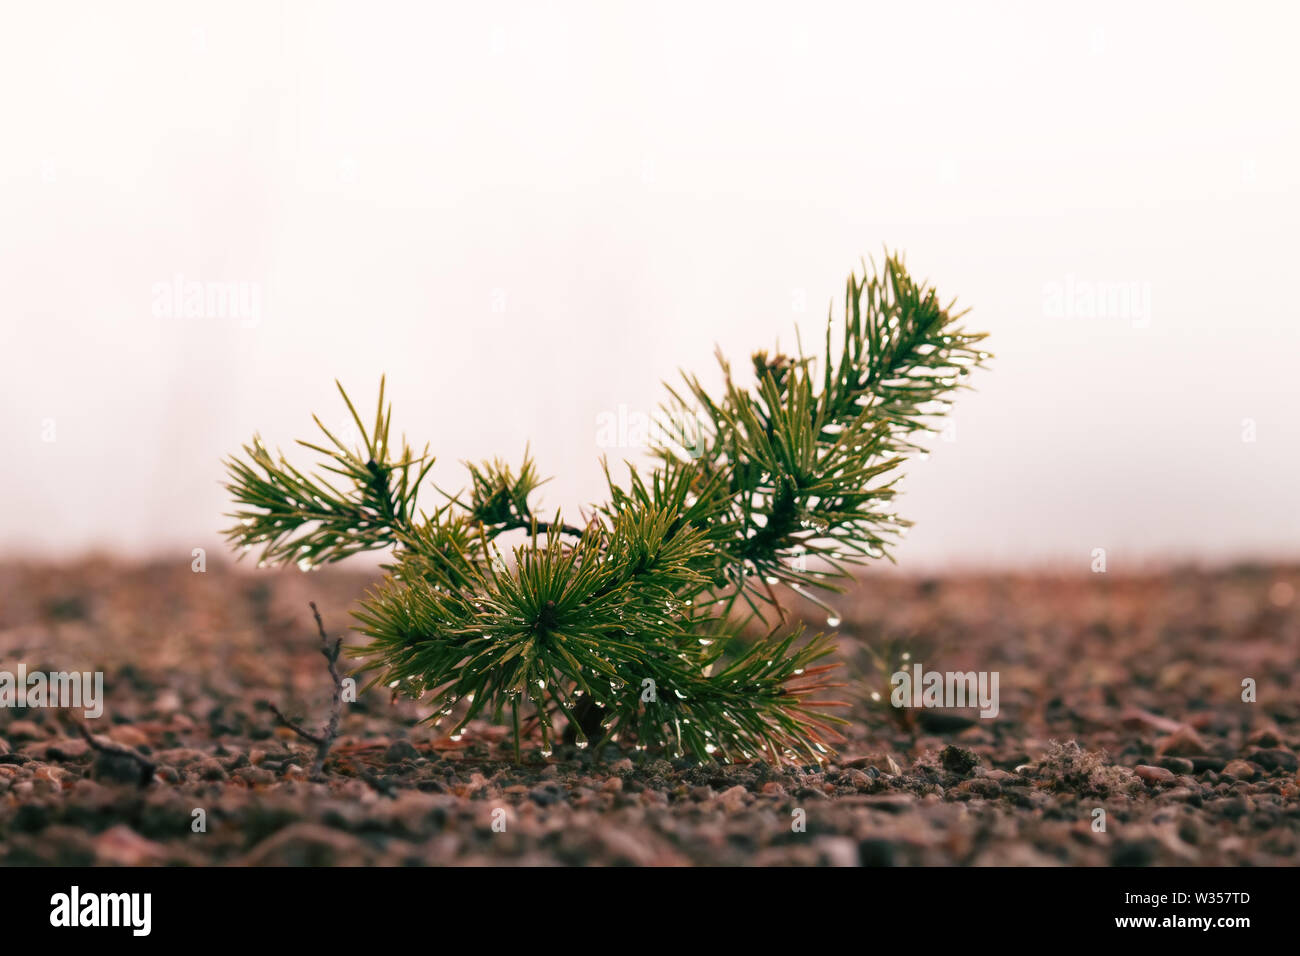 Small trees in fog and dew, pine undergrowth. Early spring in the North - Stock Image